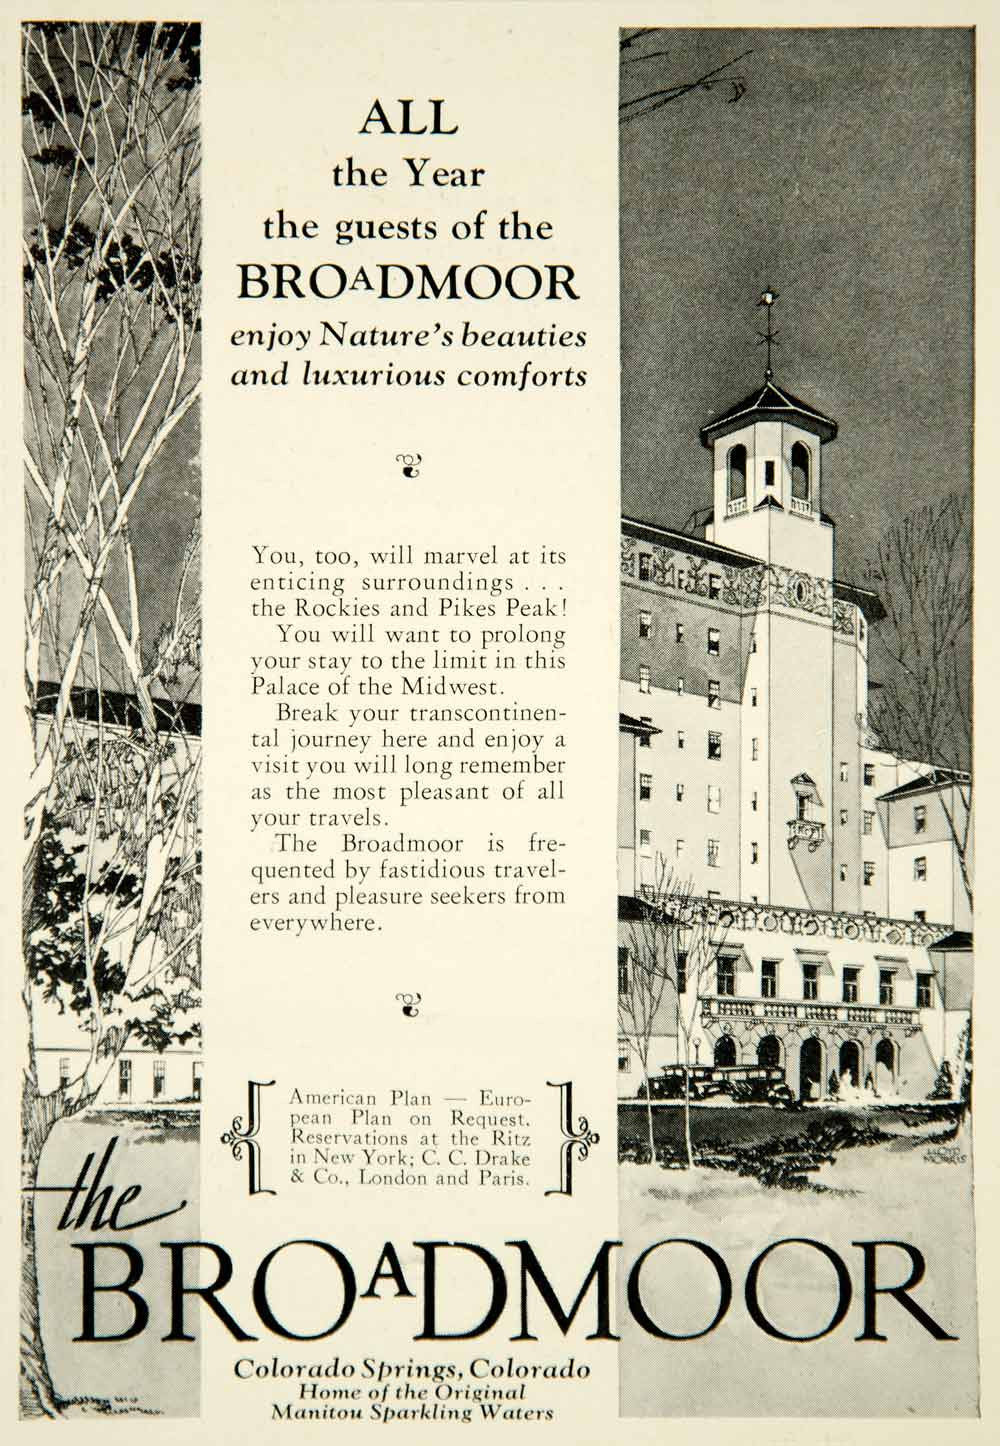 1931 Ad Broadmoor Luxury Hotel Colorado Springs CO Travel Rocky Mountain YTS2